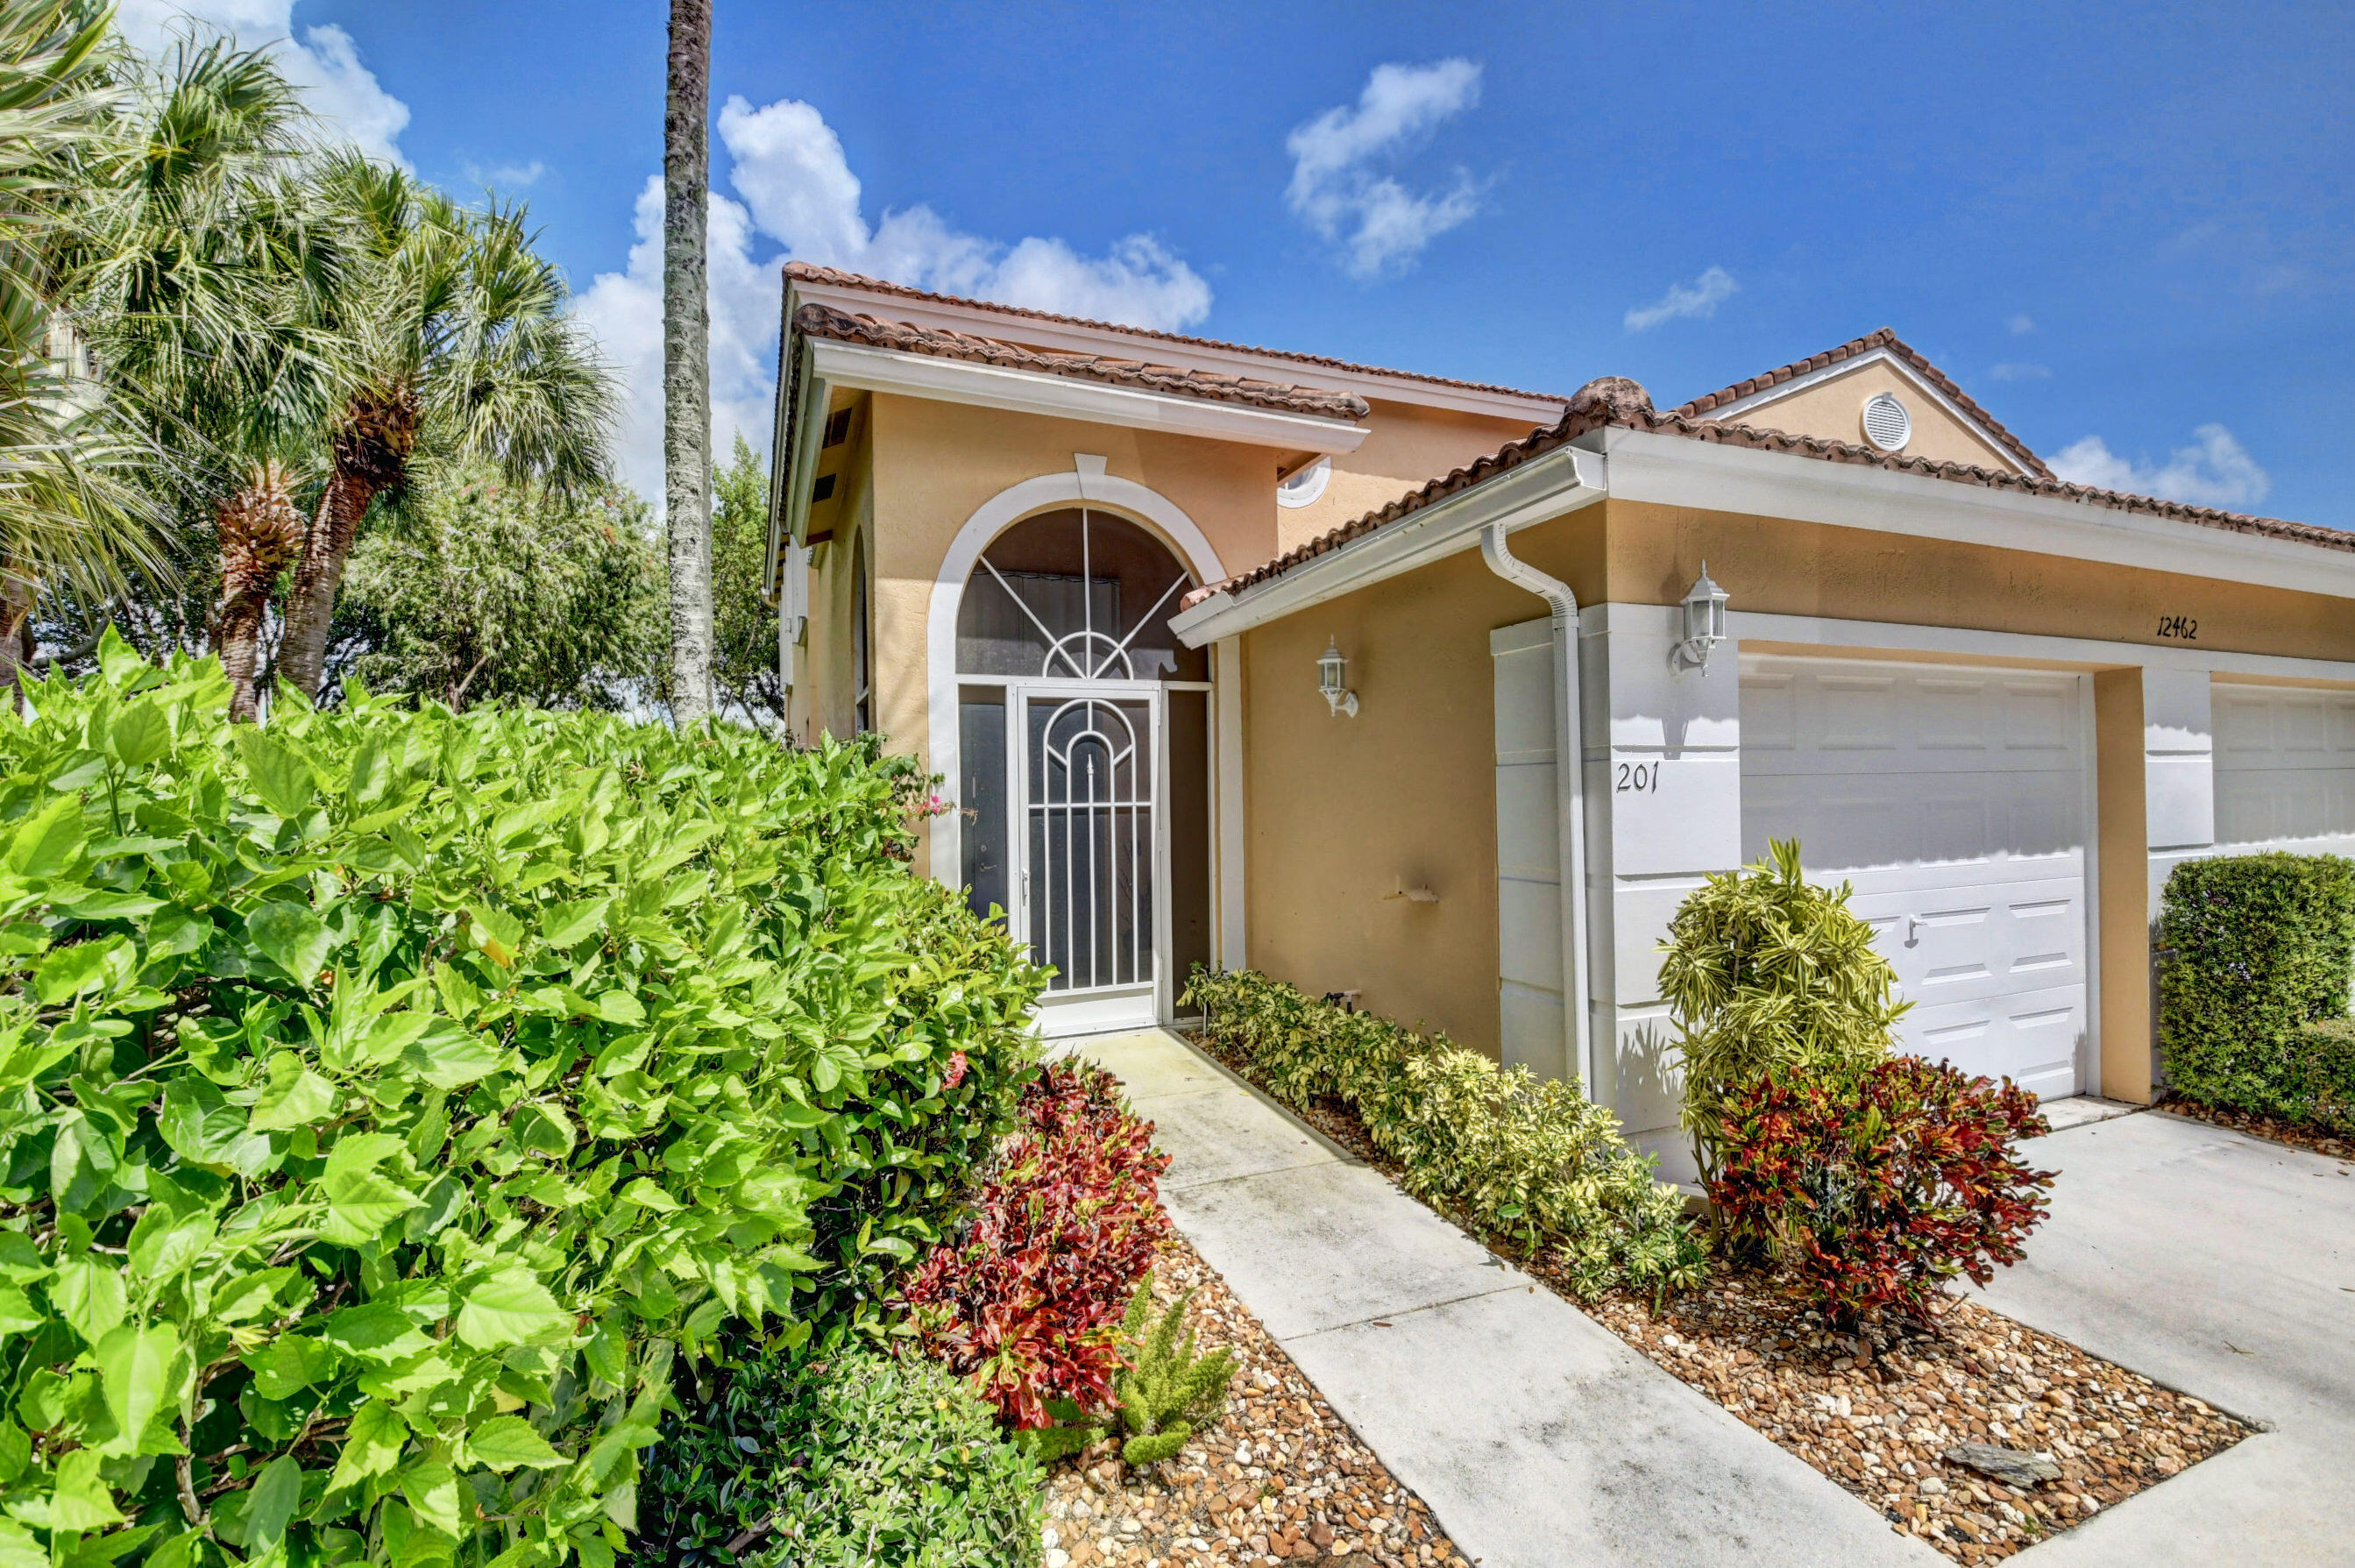 12462  Crystal Pointe Drive 201 For Sale 10746604, FL